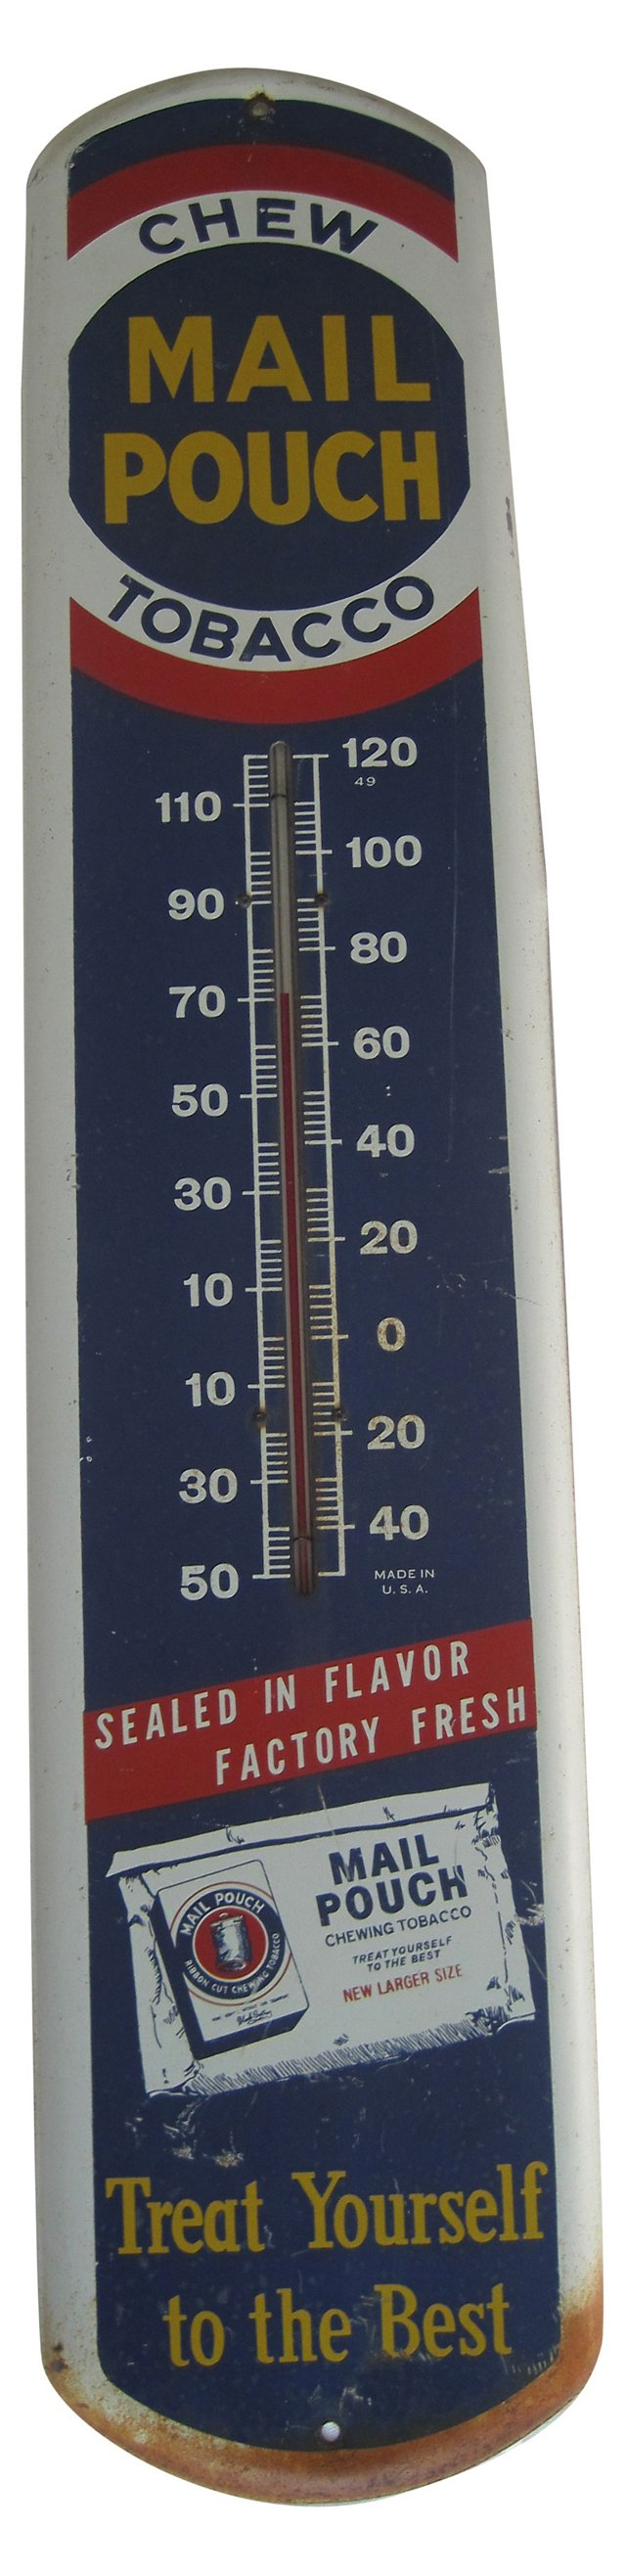 1940s Mail Pouch Thermometer Sign